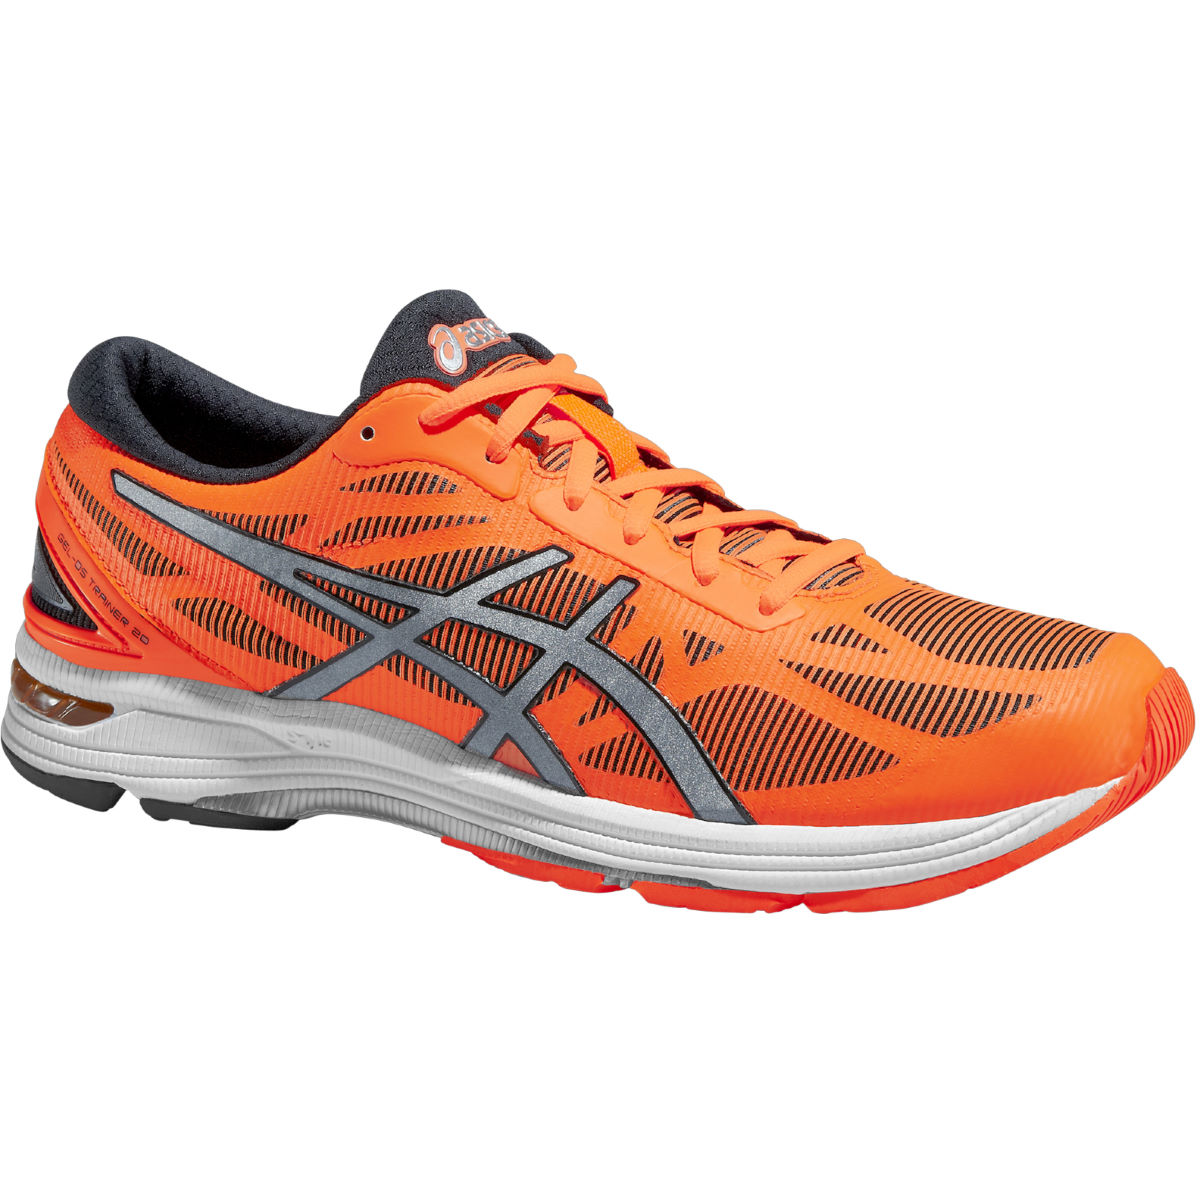 You can find a pair of Sport Shoes for yourself and your friends, the Authentic Shoes,but the wholesale price, Adidas Shoes India, Ascis Sport Shoes,basketball shoes,Best Running Shoes.